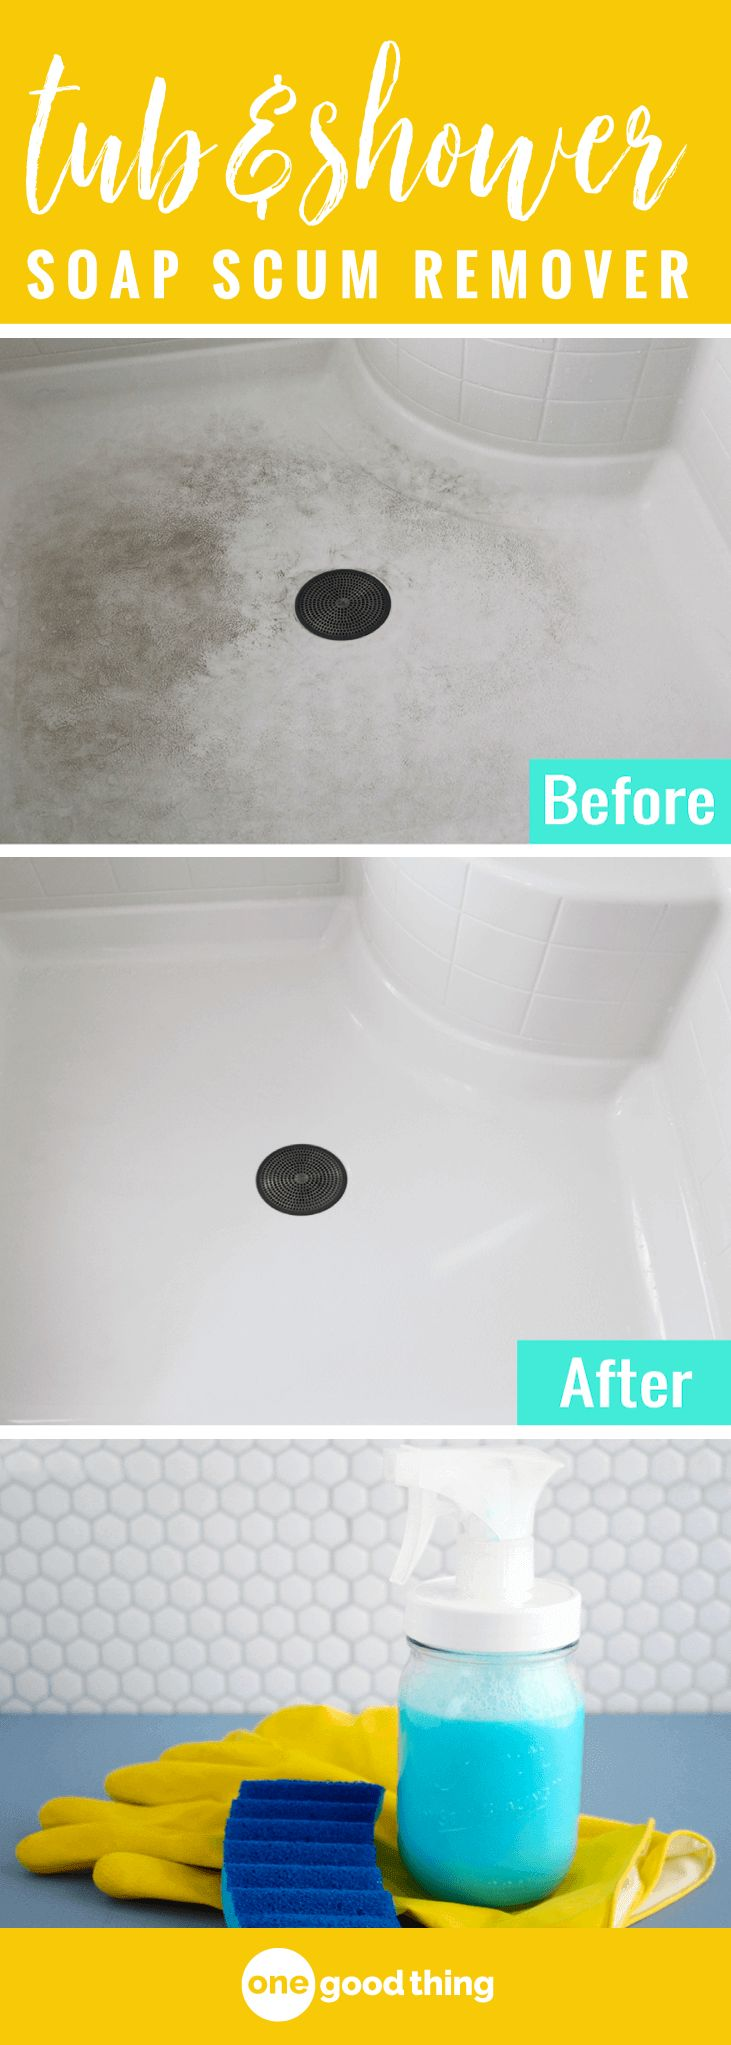 This homemade shower & tub cleaner cuts through stubborn soap scum like nobody's business, clinging to walls & floors rather than running down the drain. #cleaningtips #diycleaners